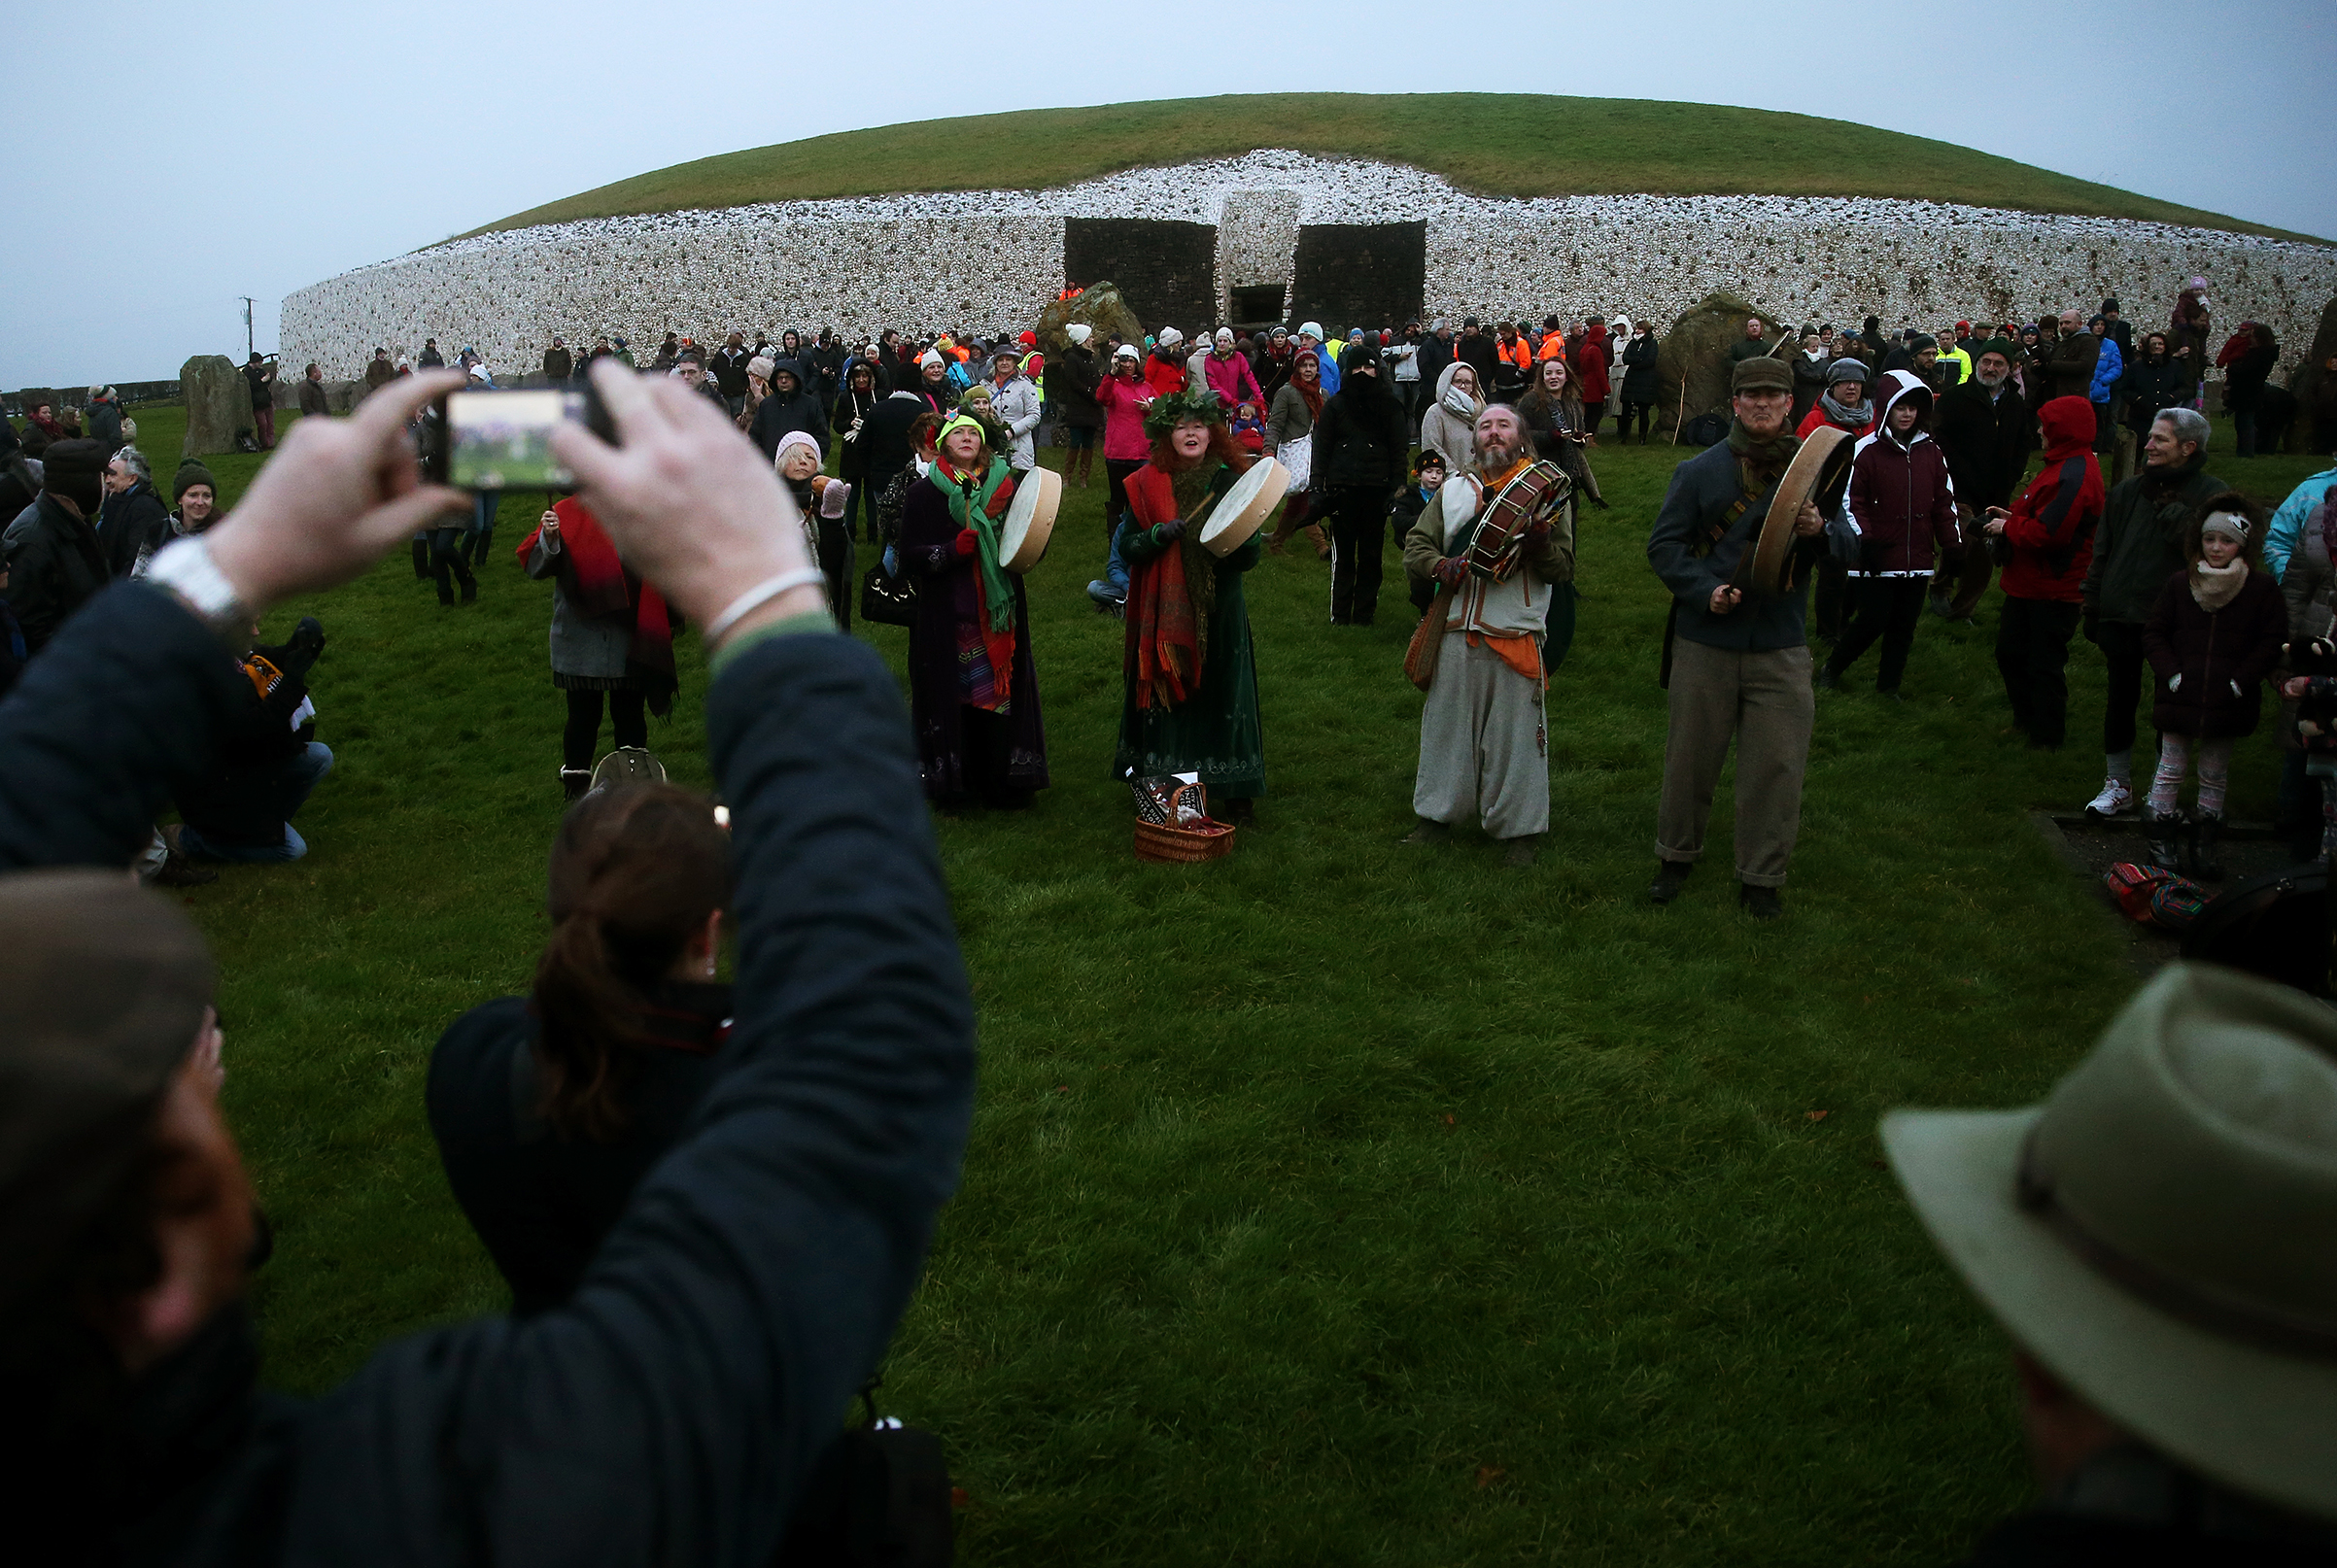 People gather for sunrise at Newgrange on the morning of the winter solstice on Dec. 21, 2014.